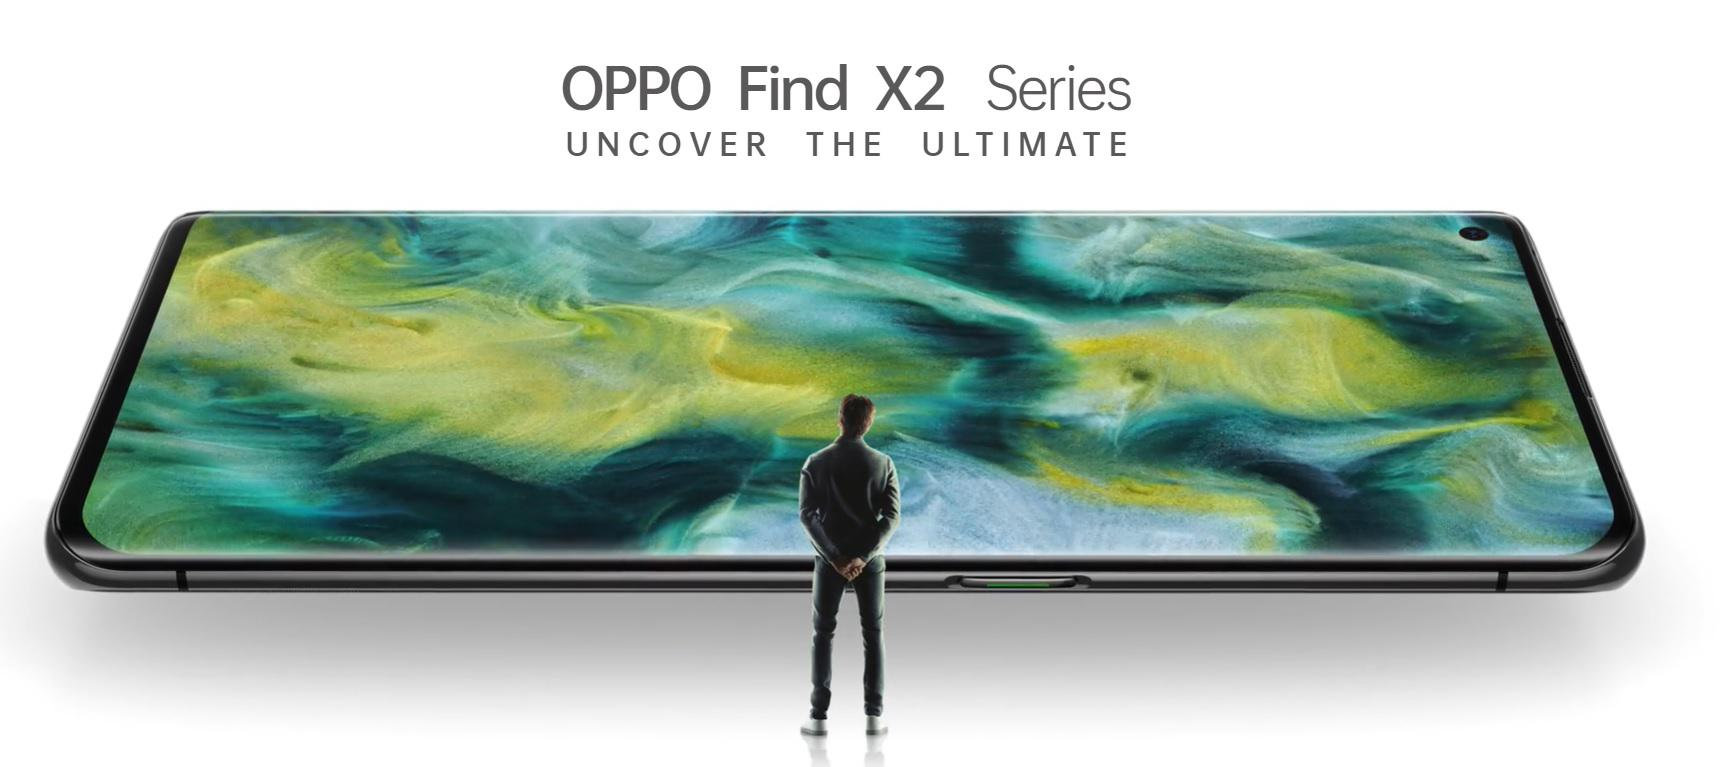 Fast, Fashionable, Fantastic. New Oppo Find X2 Pro.